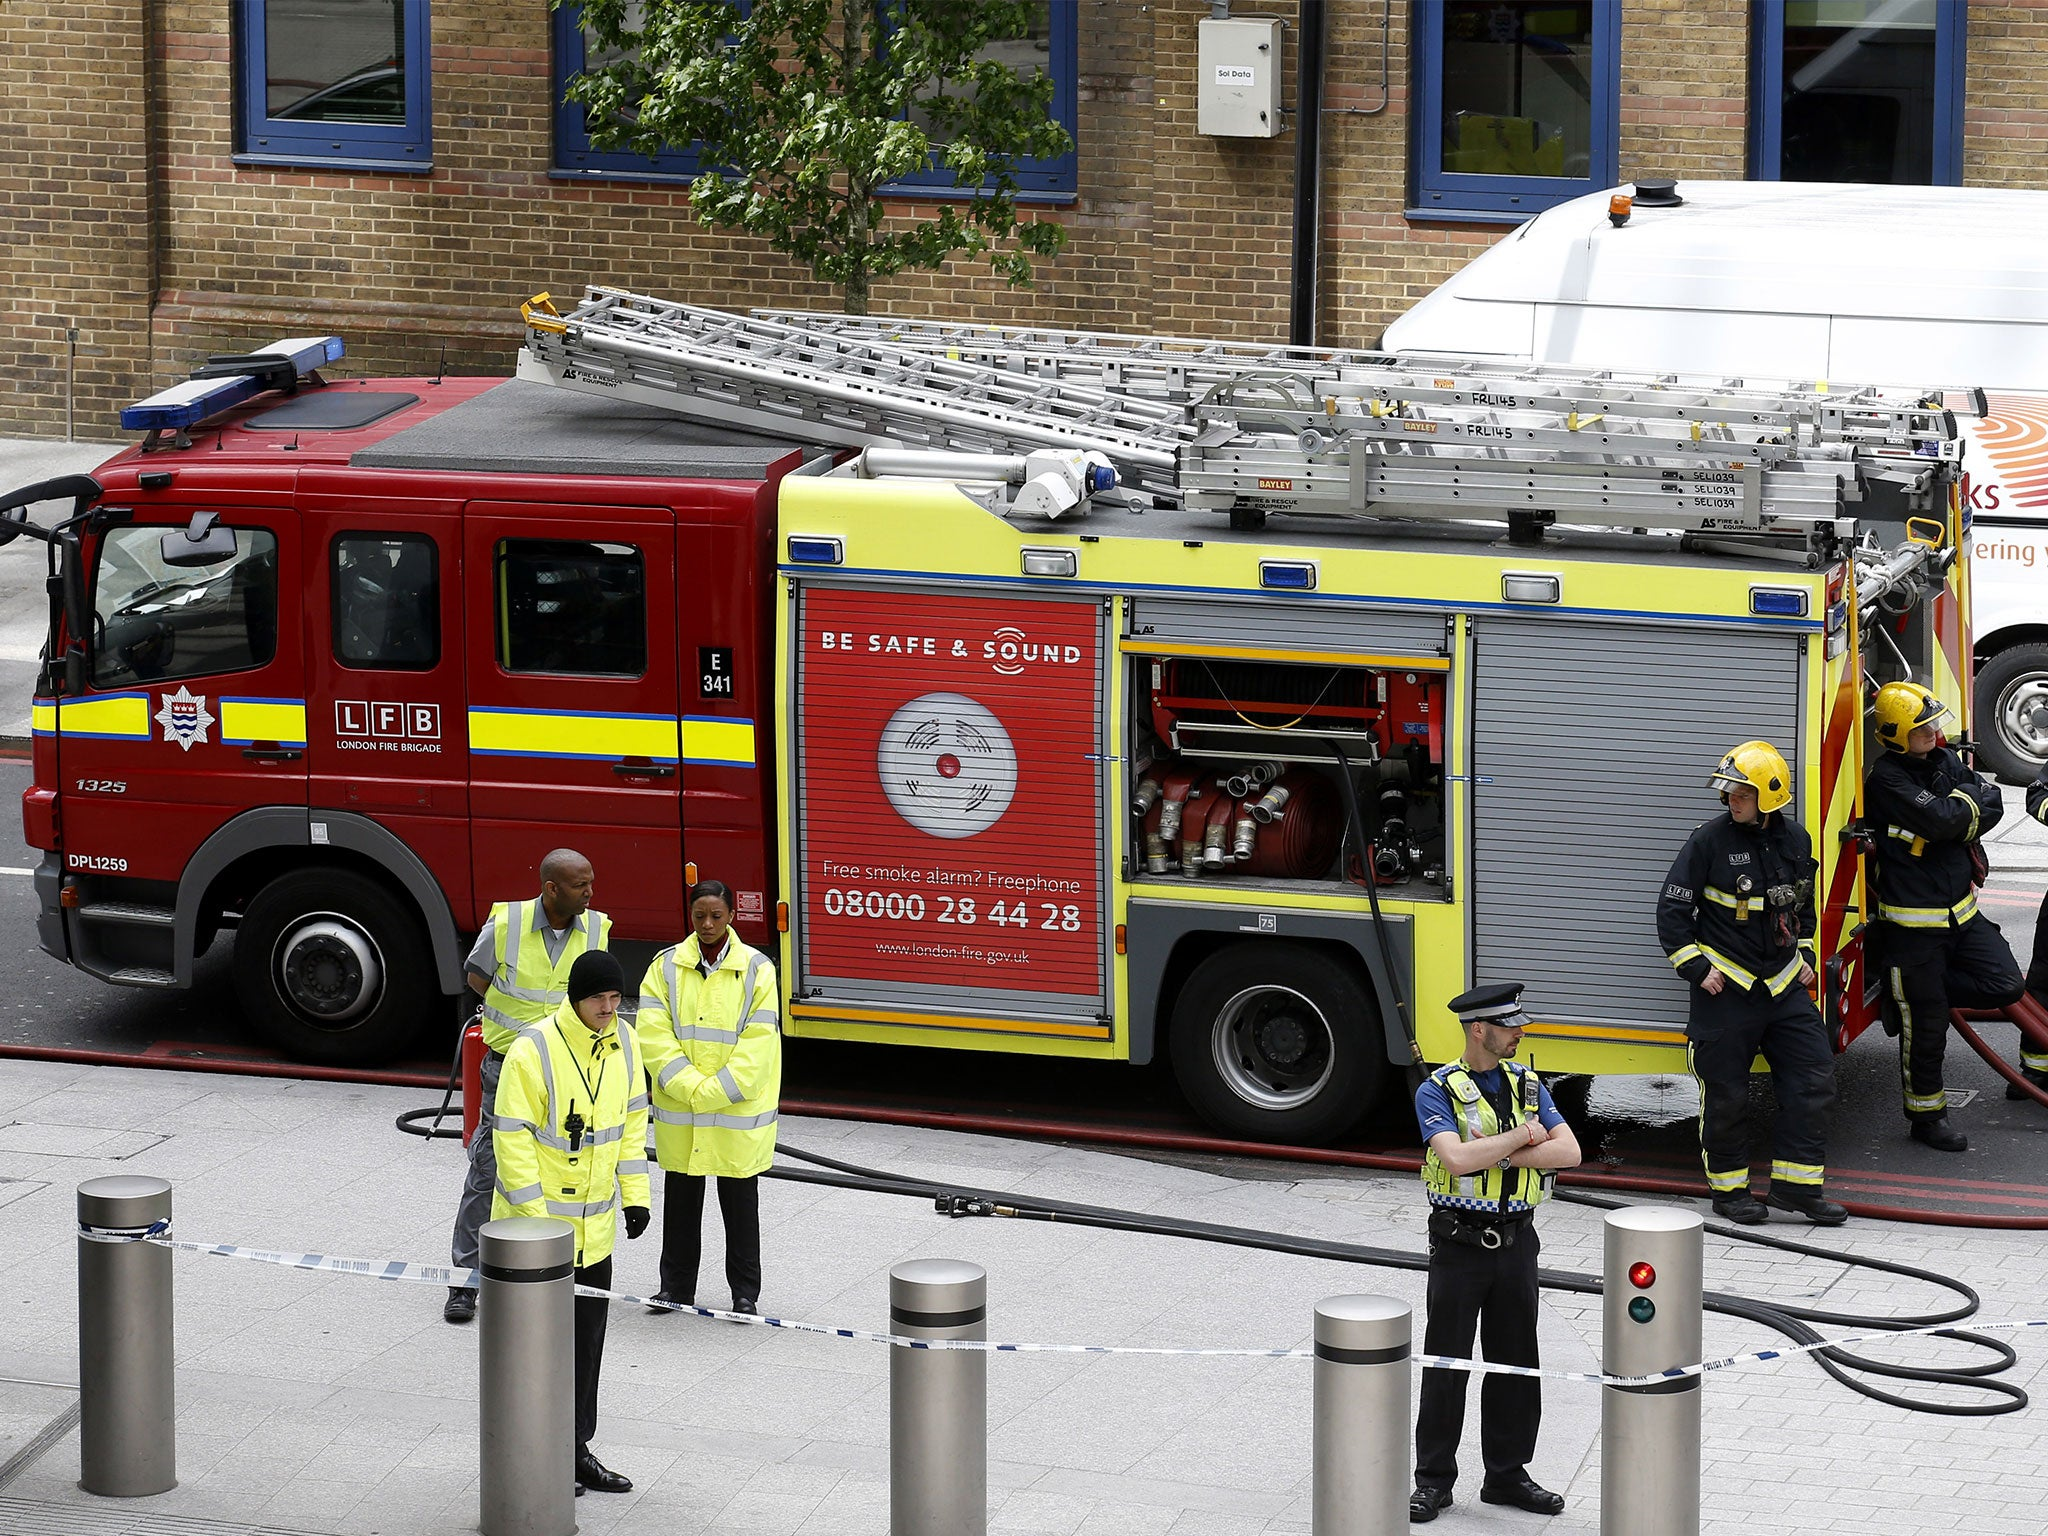 Firefighters Travel Insurance